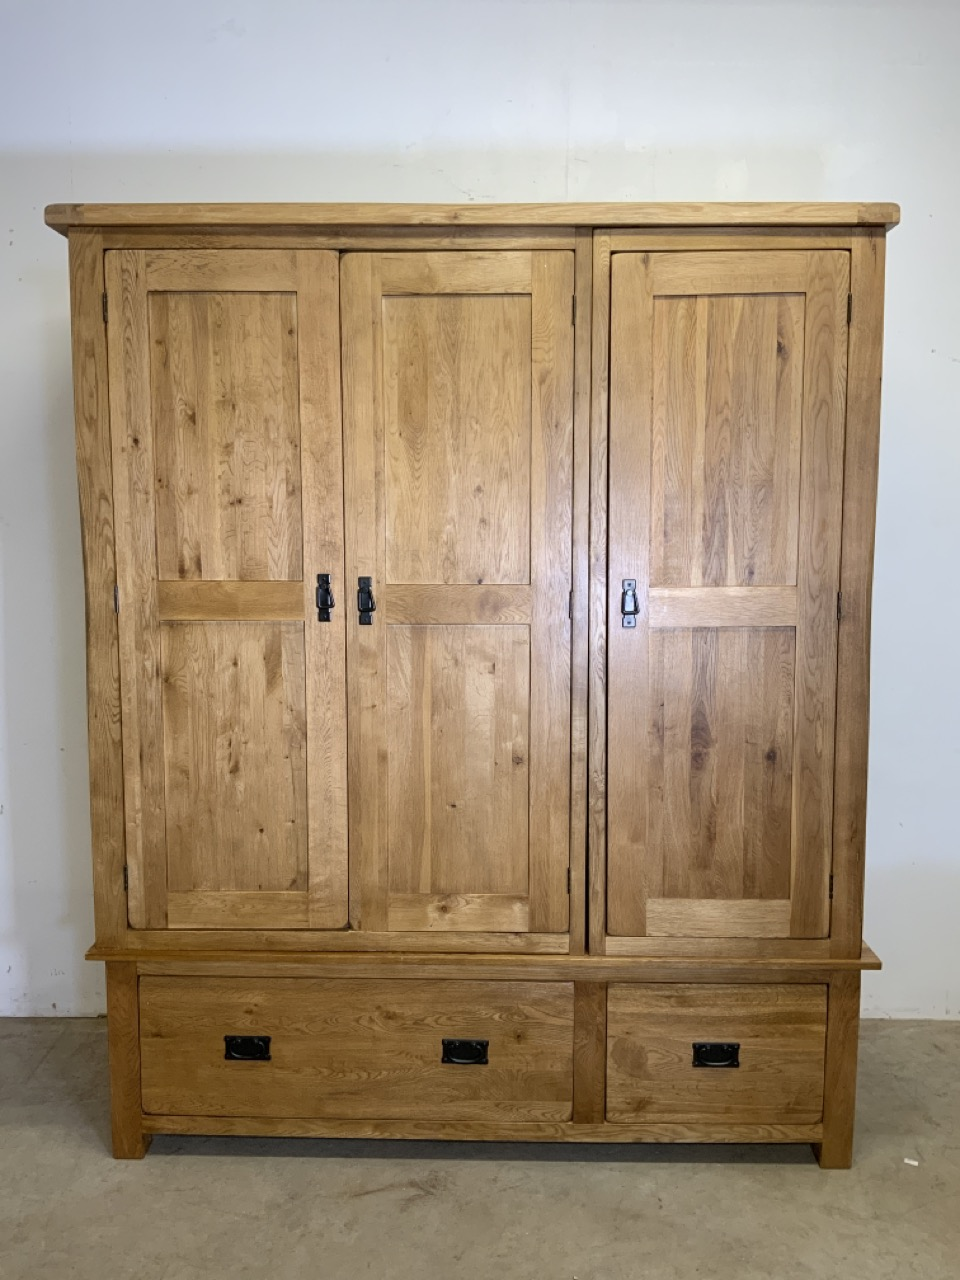 A modern oak triple wardrobe with deep drawers to base and interior hangings rail to top.